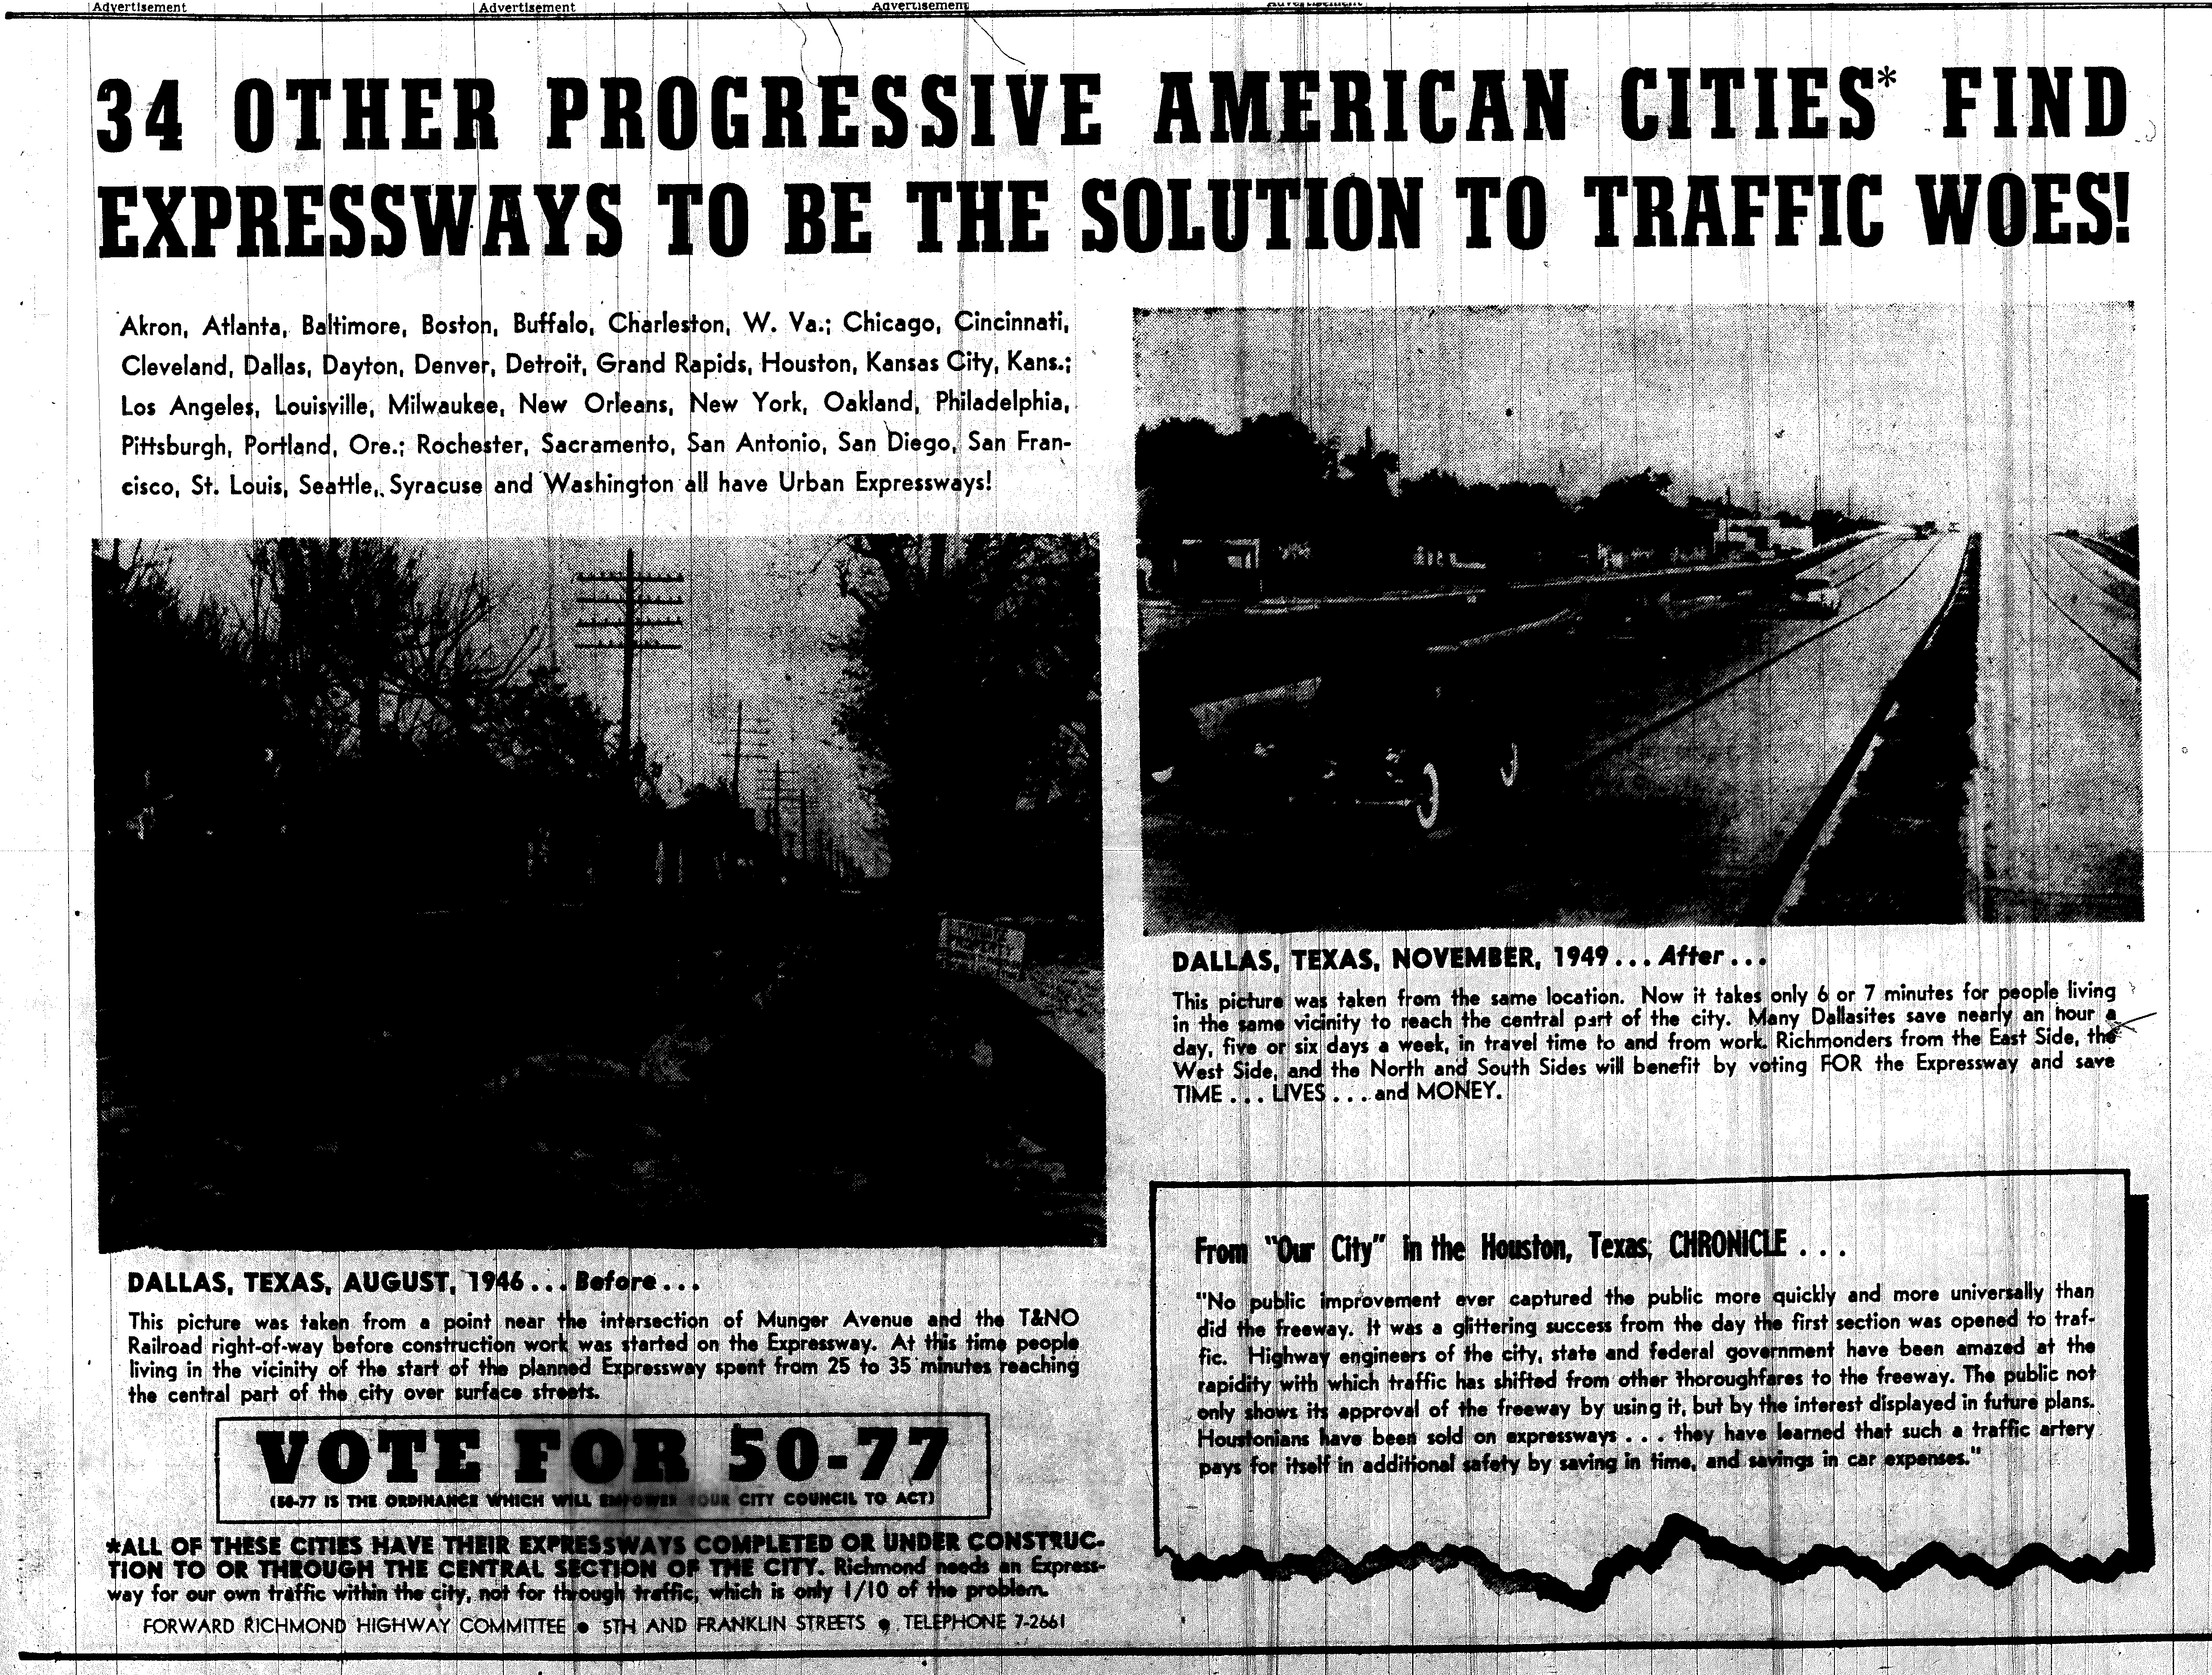 june 4 1950-First ad-Forward Richmond Highway Committee in favor-Political ad